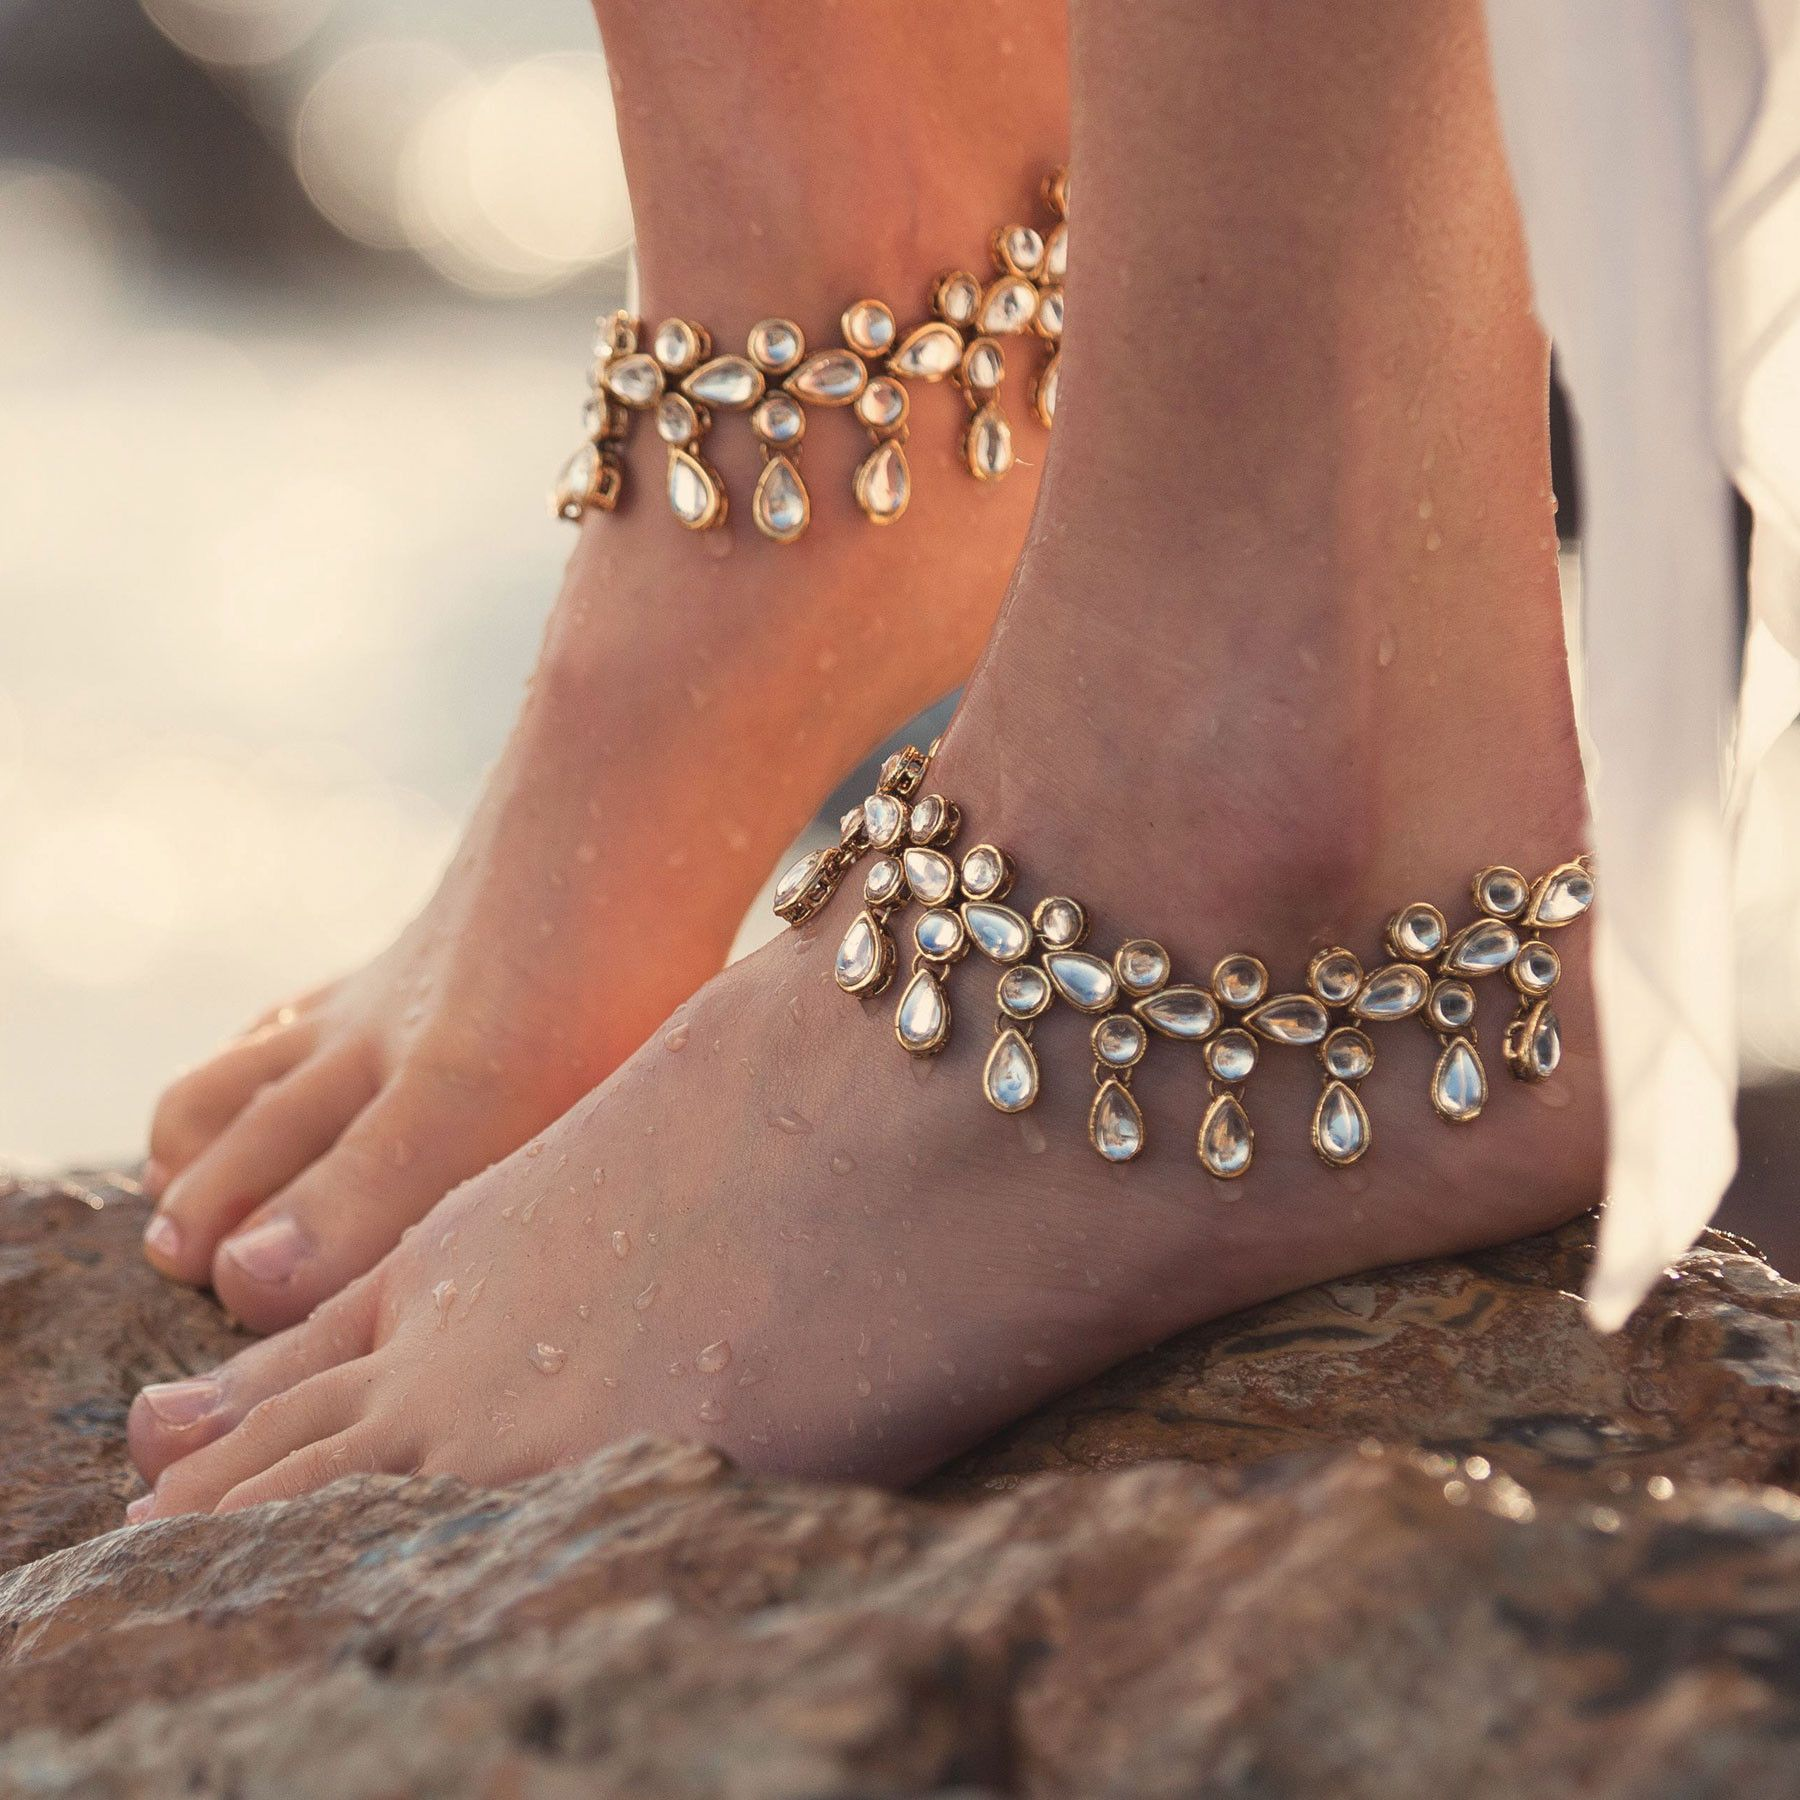 beach gothic foot sandals pin bottomless footless anklet black beaded barefoot soleless jewelry sandal wedding